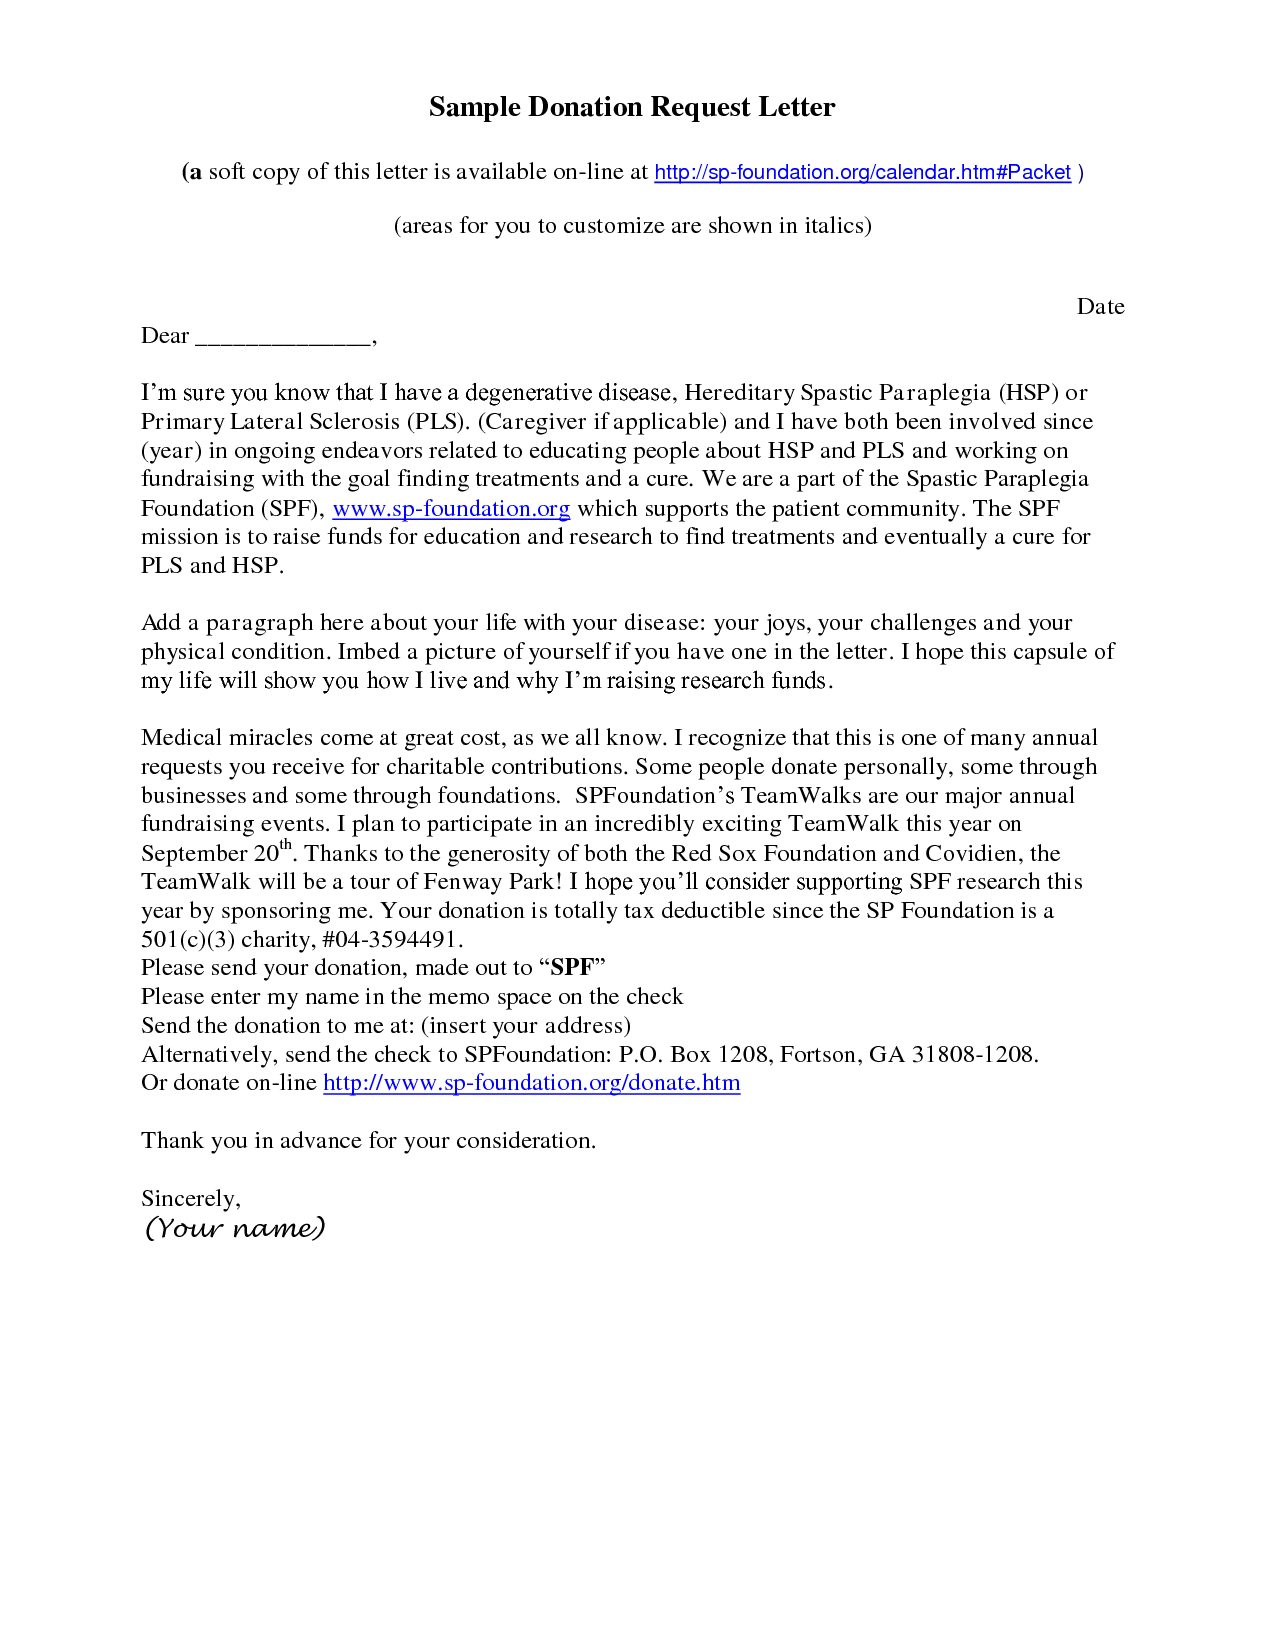 Food Donation Letter Template - How to Write A solicitation Letter for Donations Choice Image